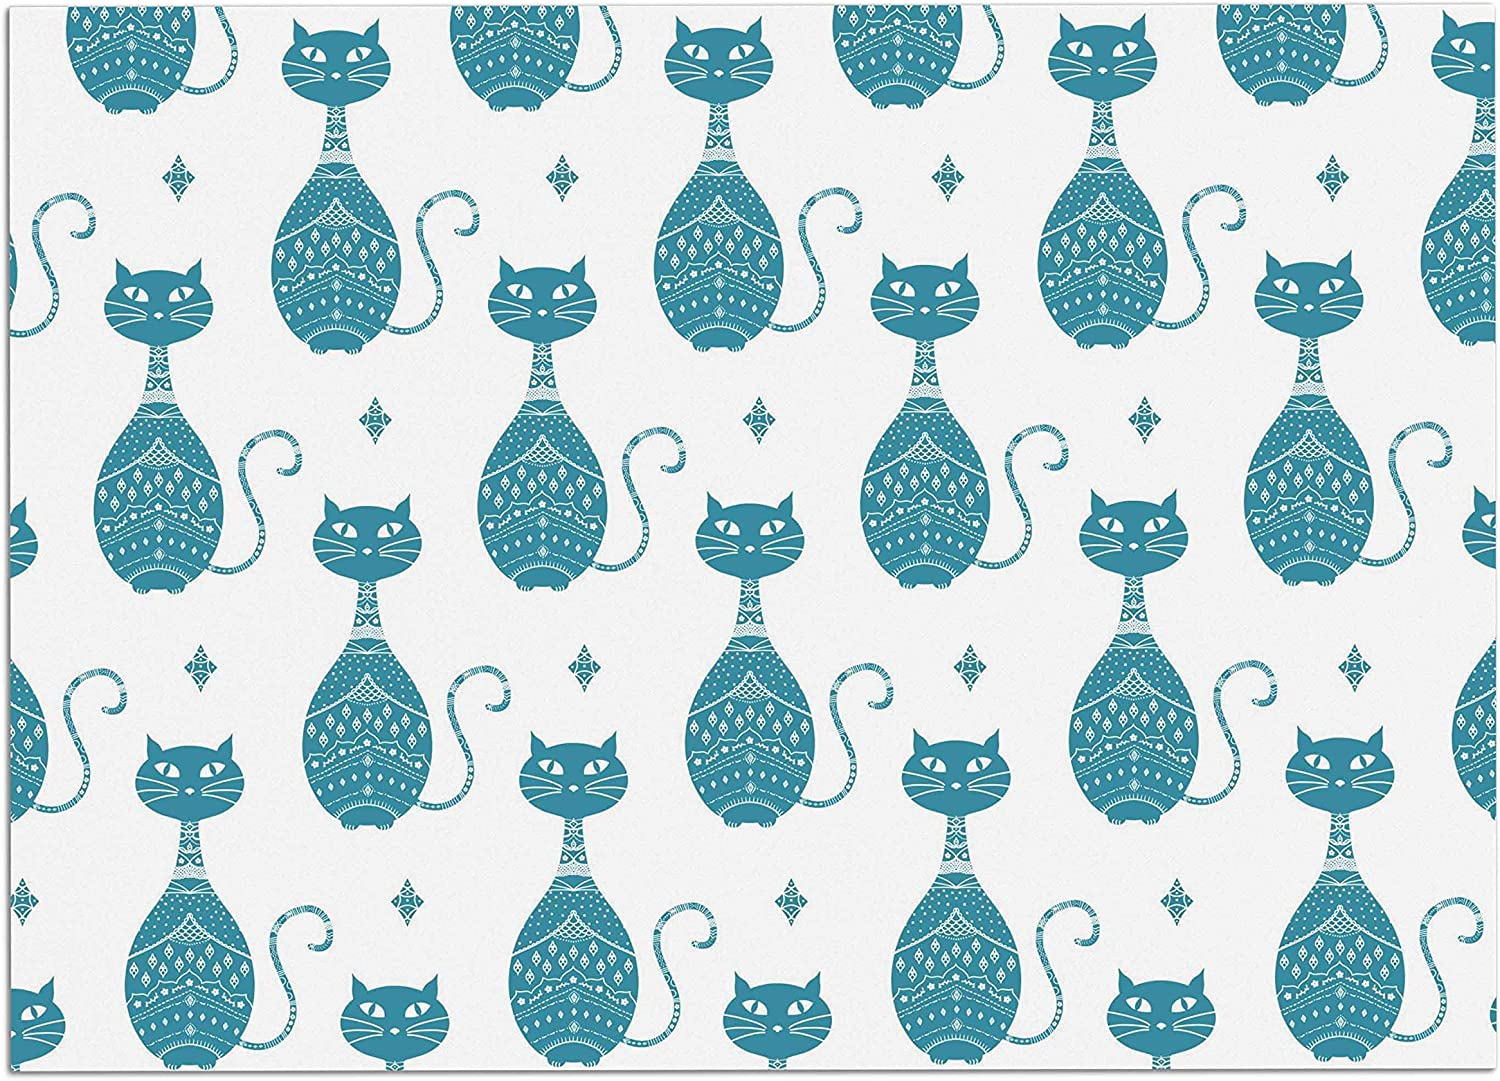 KESS InHouse CB2019ADM02 Cristina Bianco Design bluee Cat Pattern White Animal Dog Place Mat, 24 x15